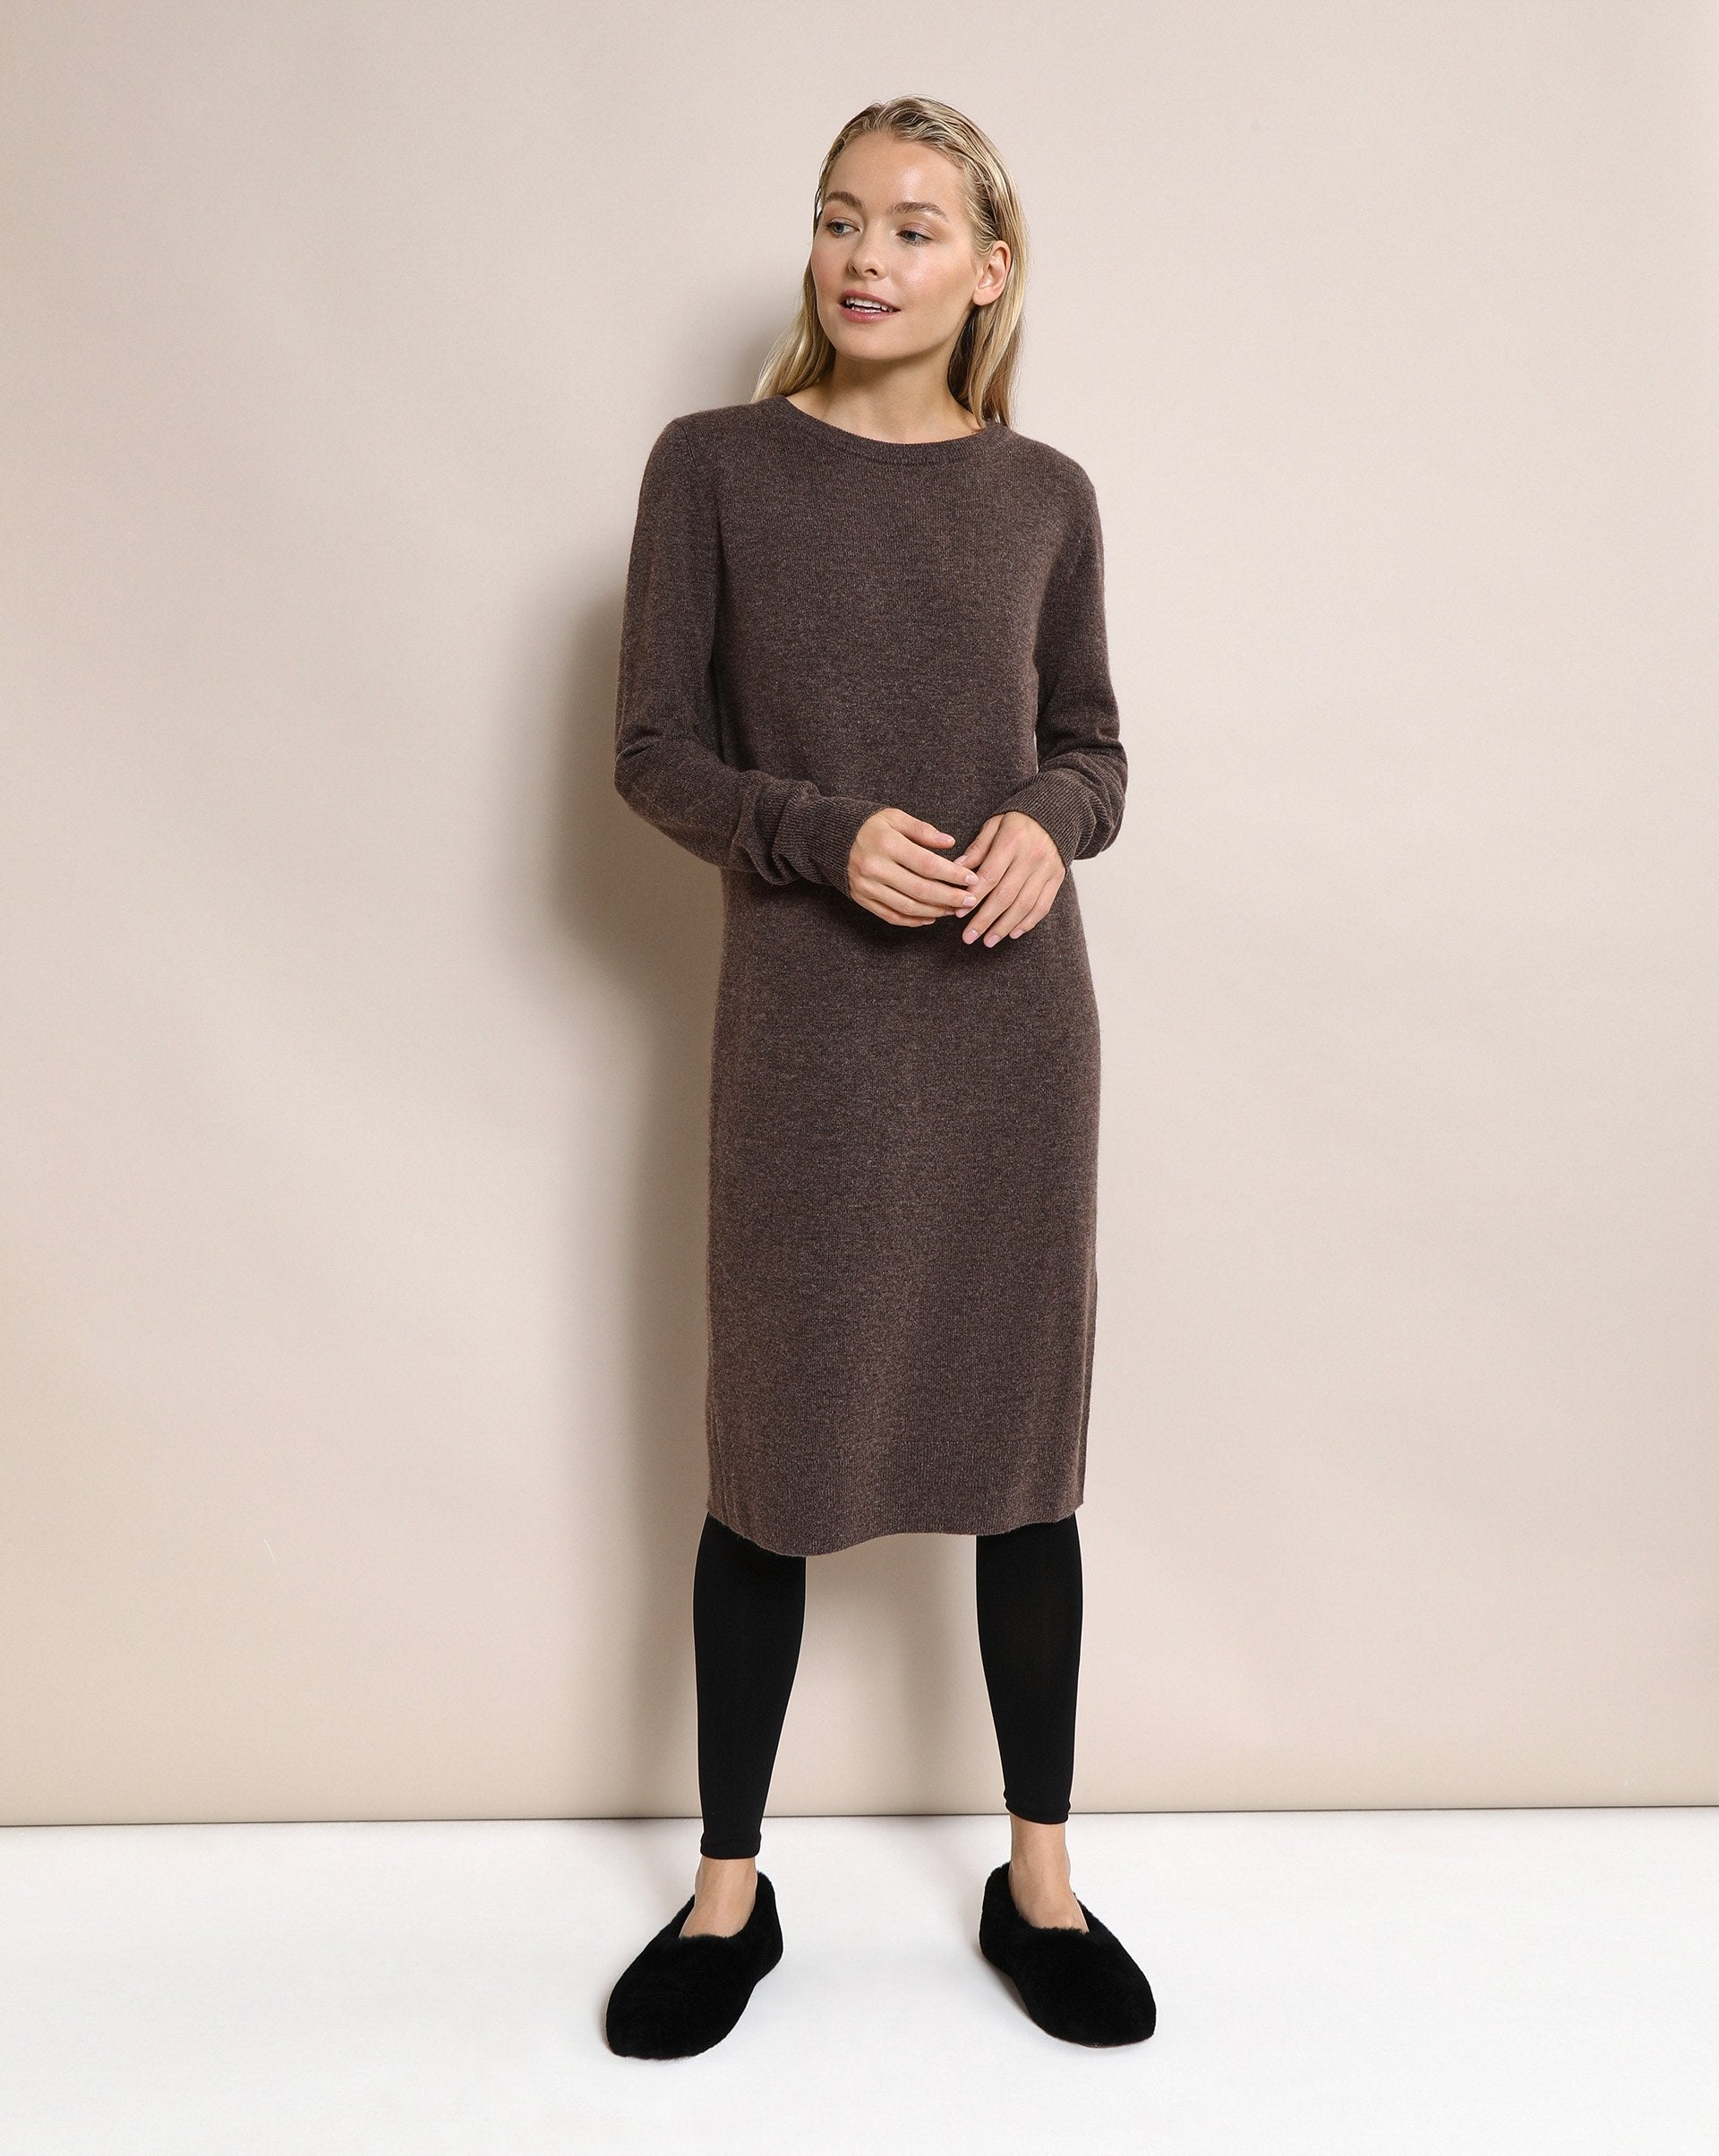 Cashmere and wool blend crew neck dress - 12 STOREEZ